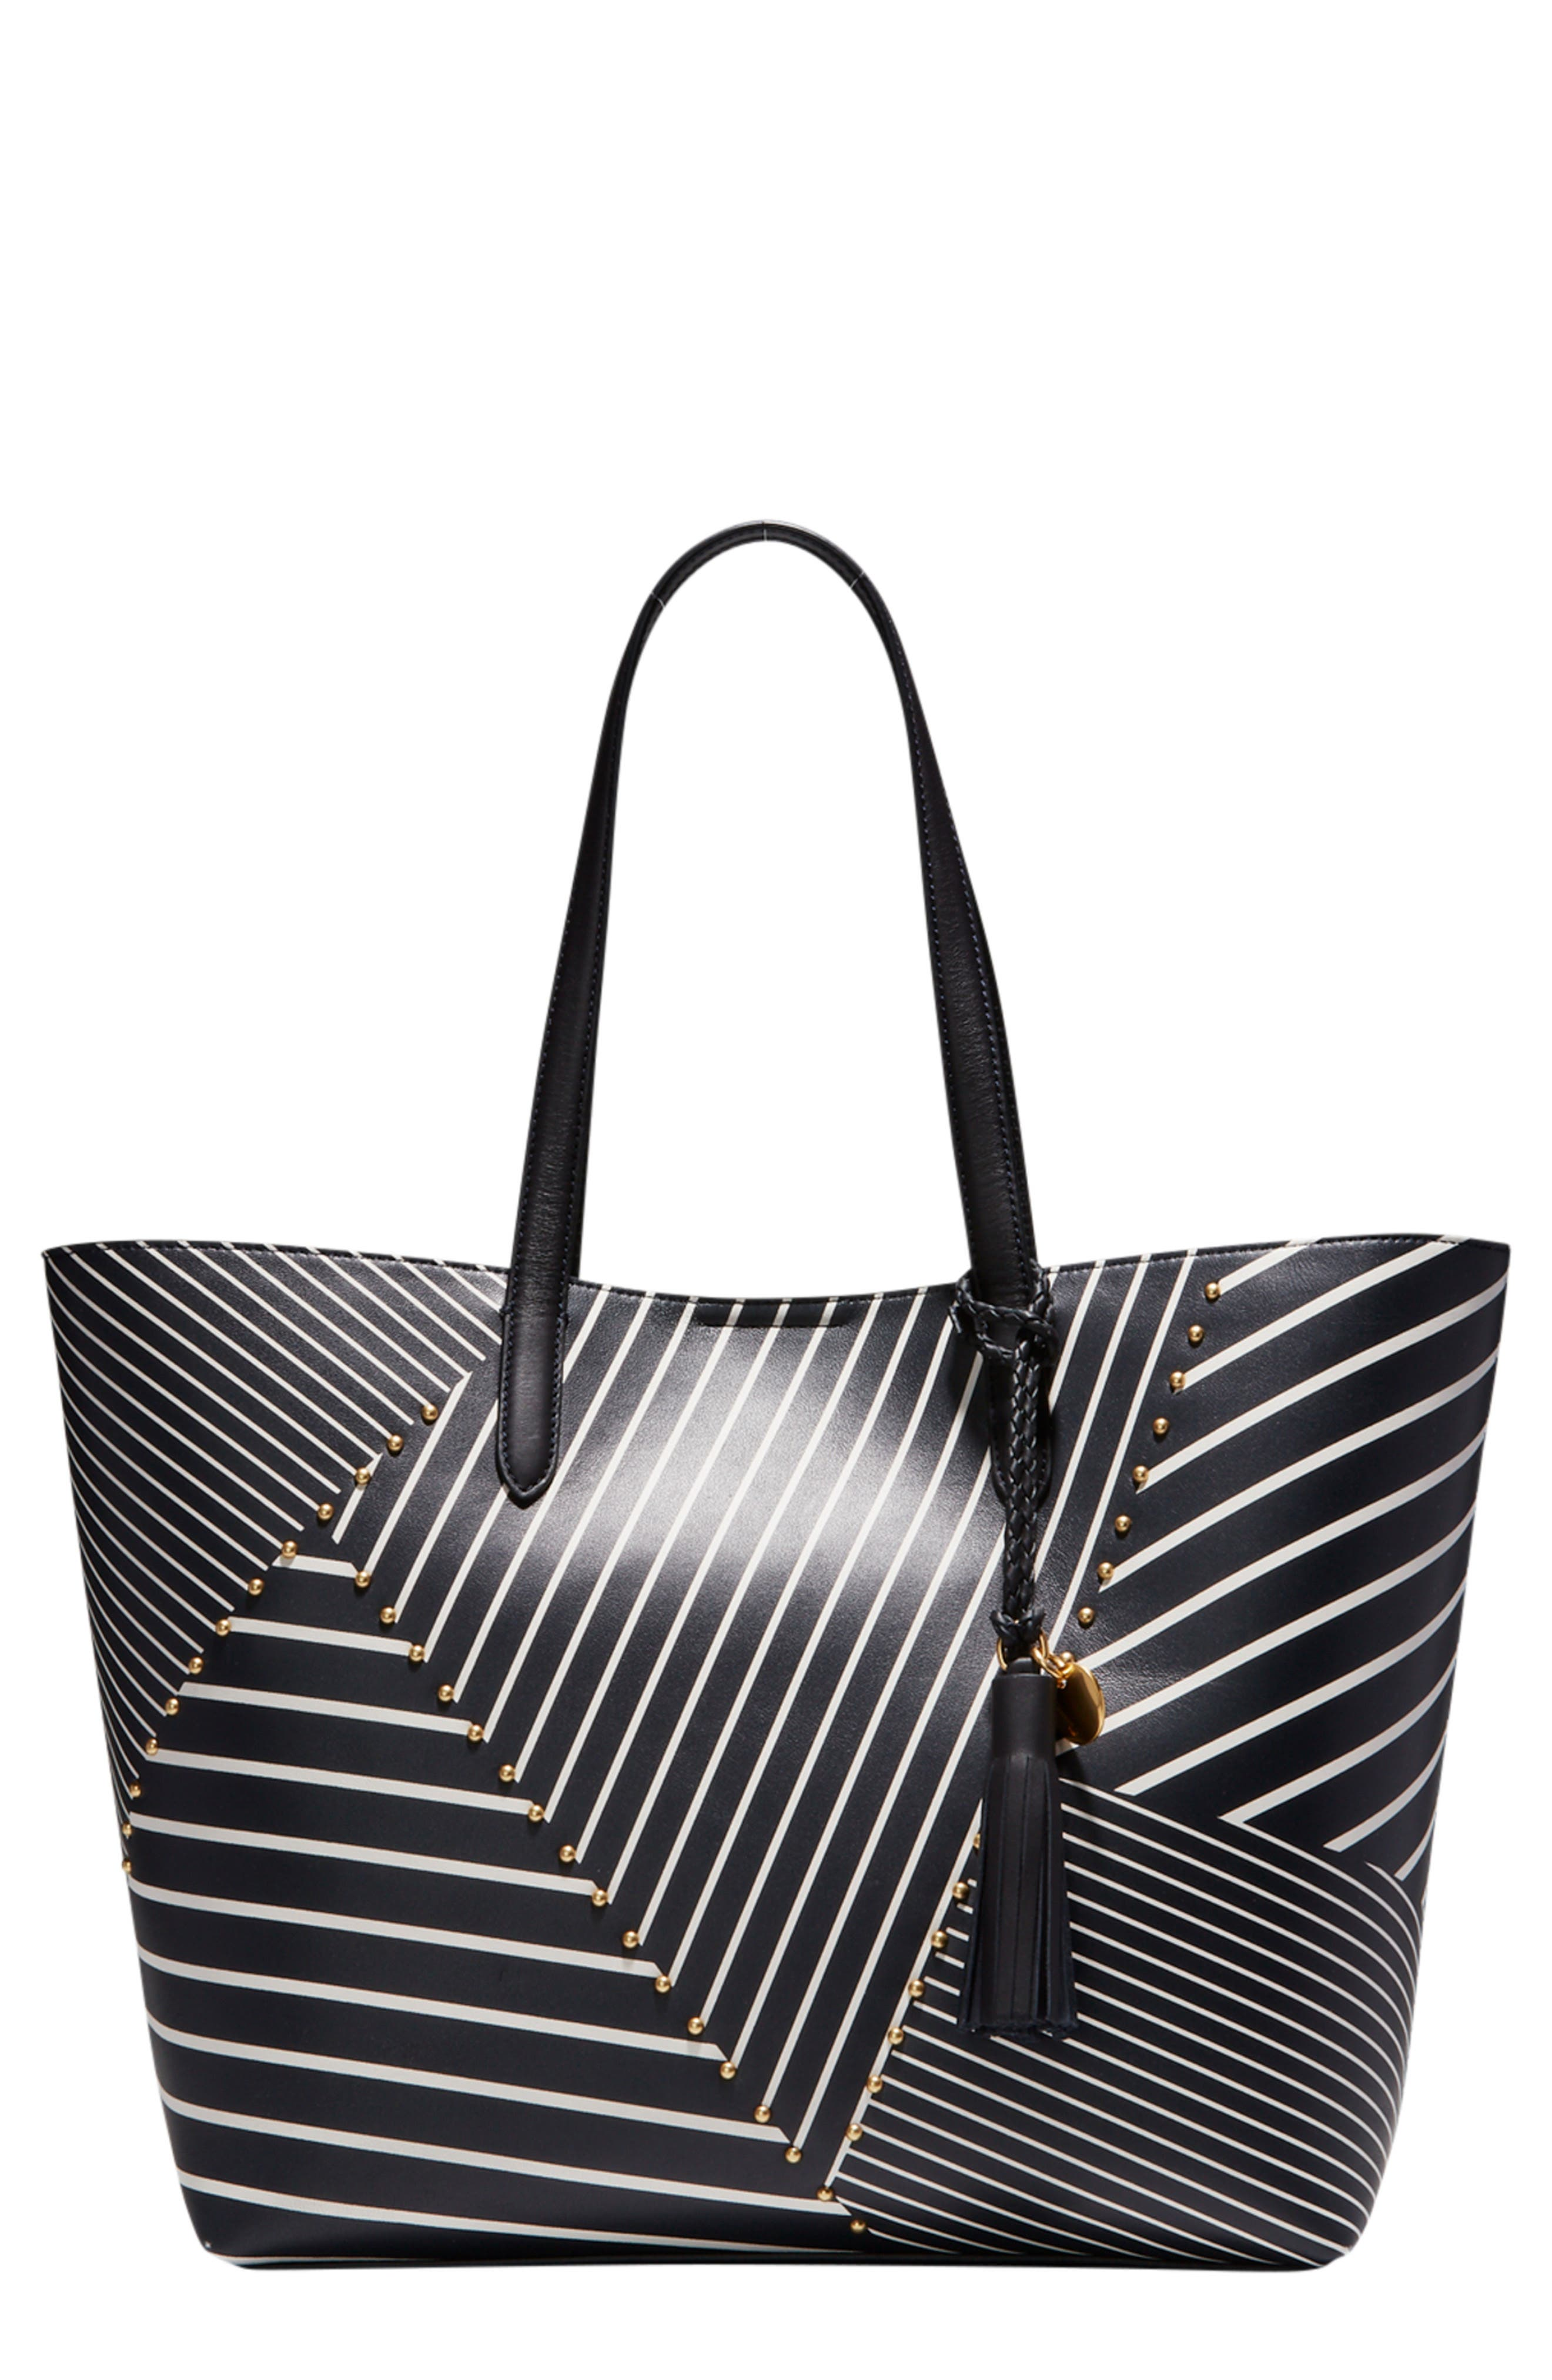 COLE HAAN Payson Print Tote, Main, color, 001